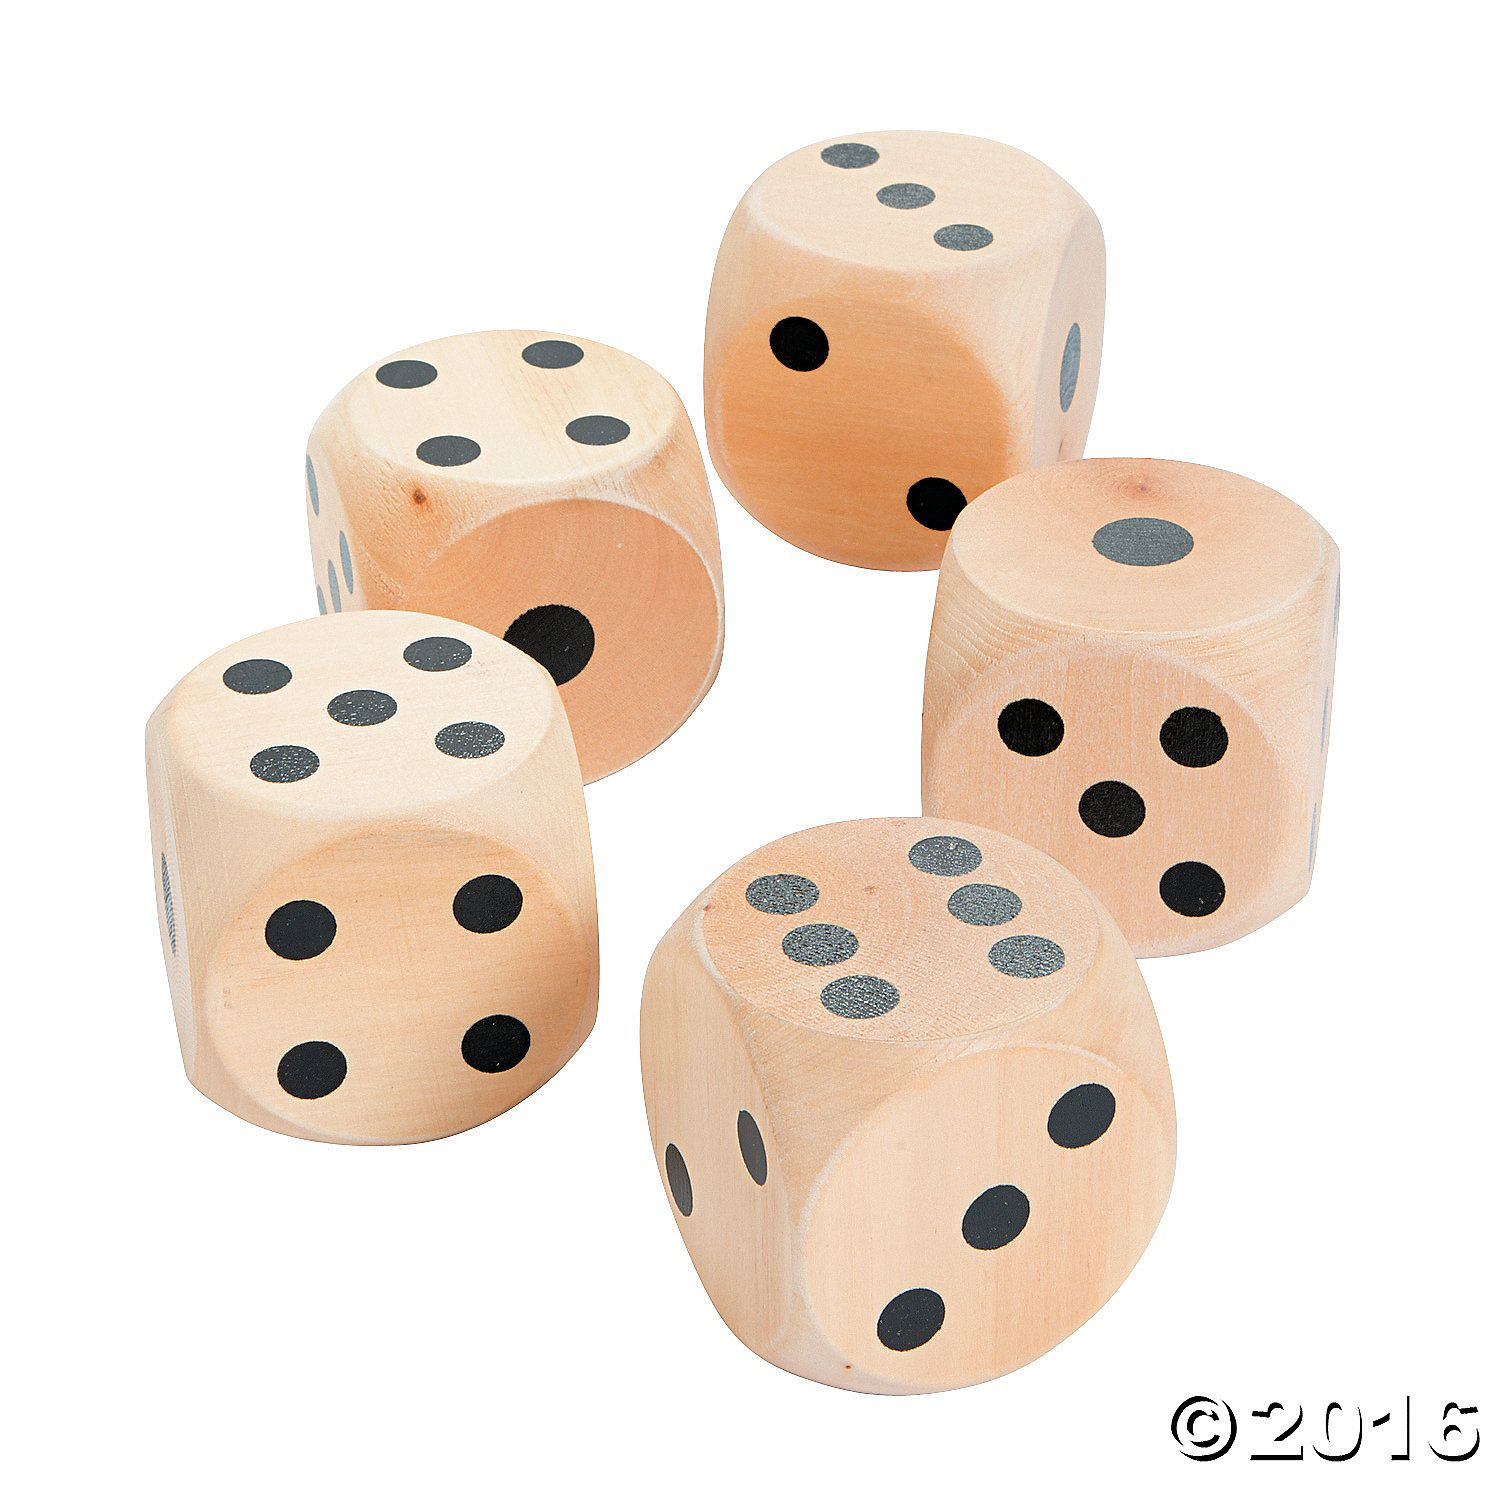 Design Your Own Exterior: Give These Oversized Dice A Roll And Create Your Own